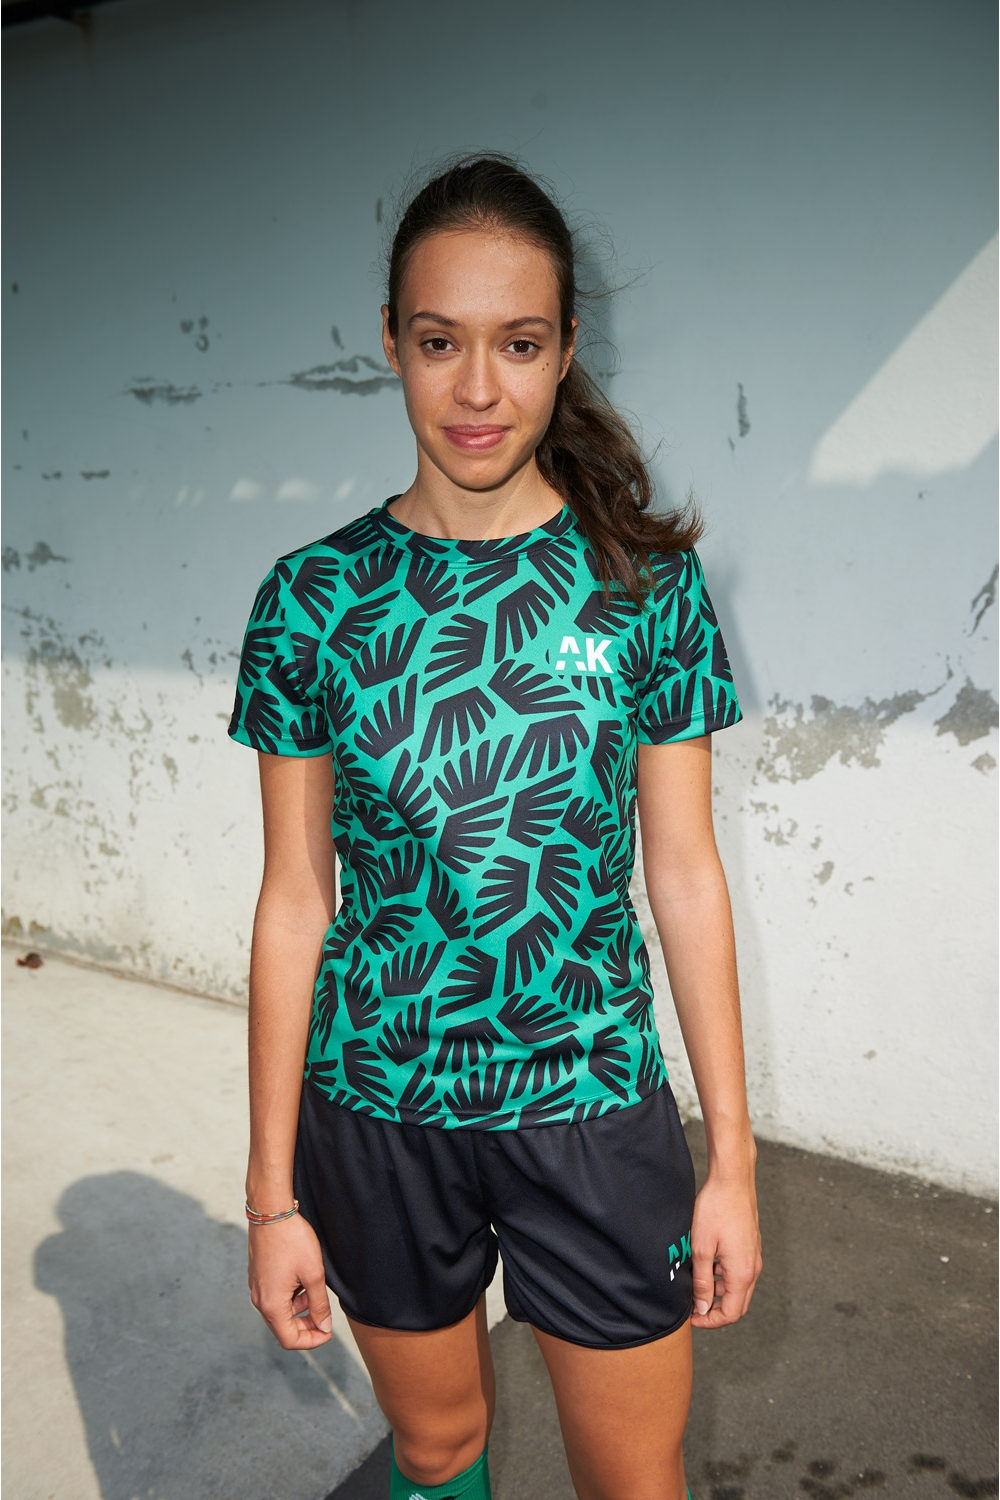 Suzanne Jersey - Winged Black & Green - Women's Football - Mid-distance front view